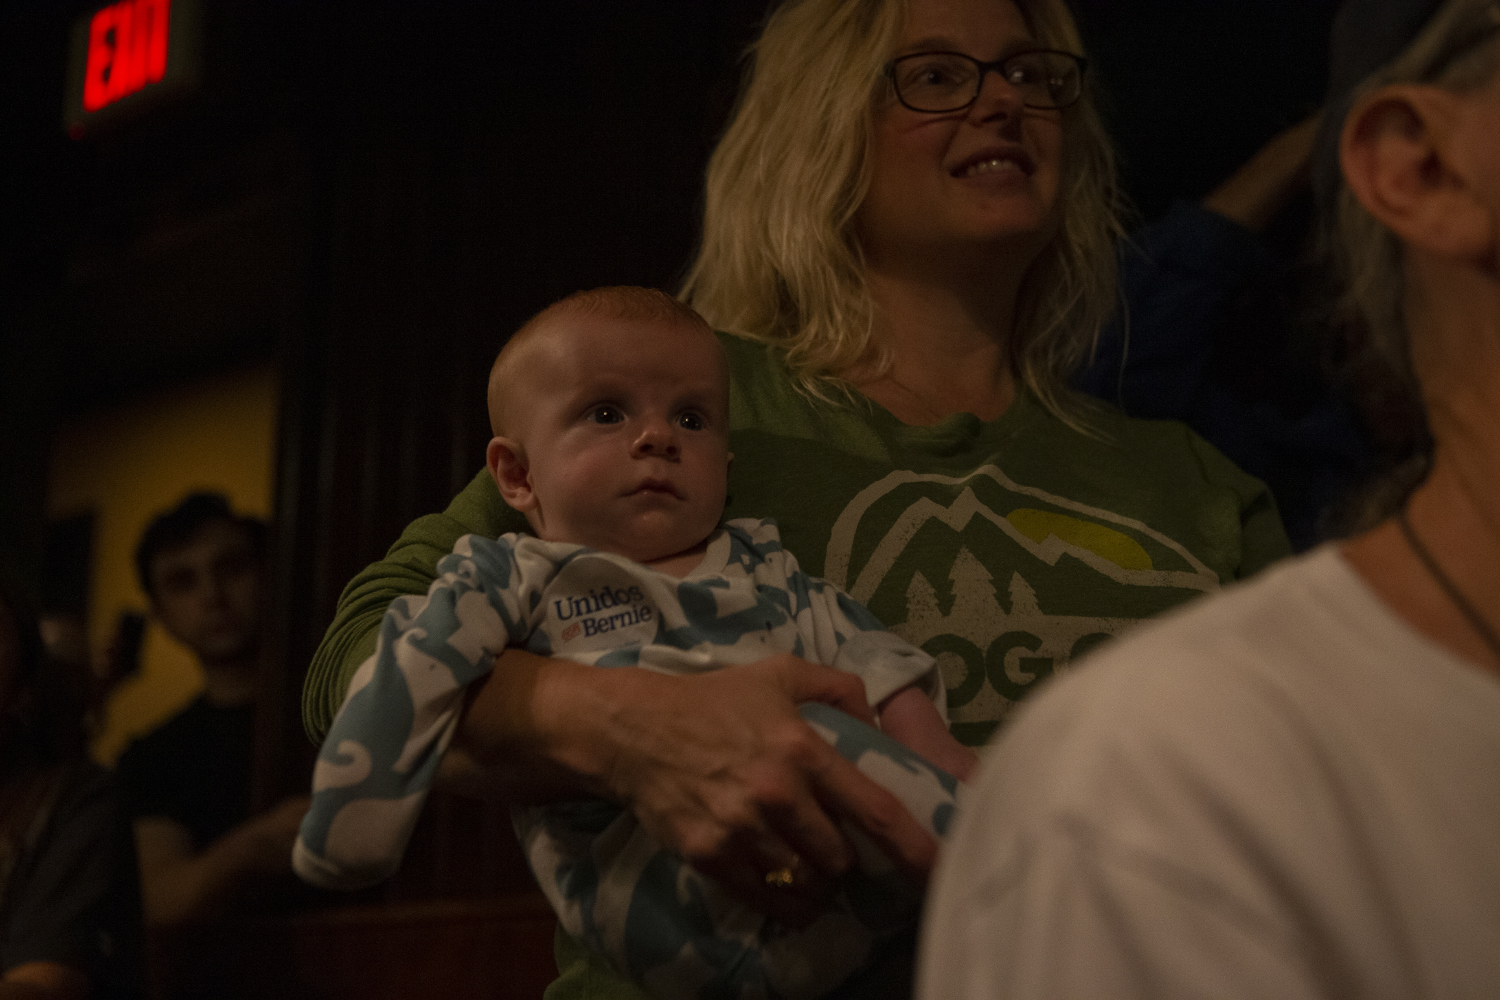 An+attendee+holds+a+baby+during+Bernie+Sanders%E2%80%99s+Loter%C3%ADa+Night+with+LULAC+on+Sunday%2C+September+8%2C+2019+at+The+Mill.